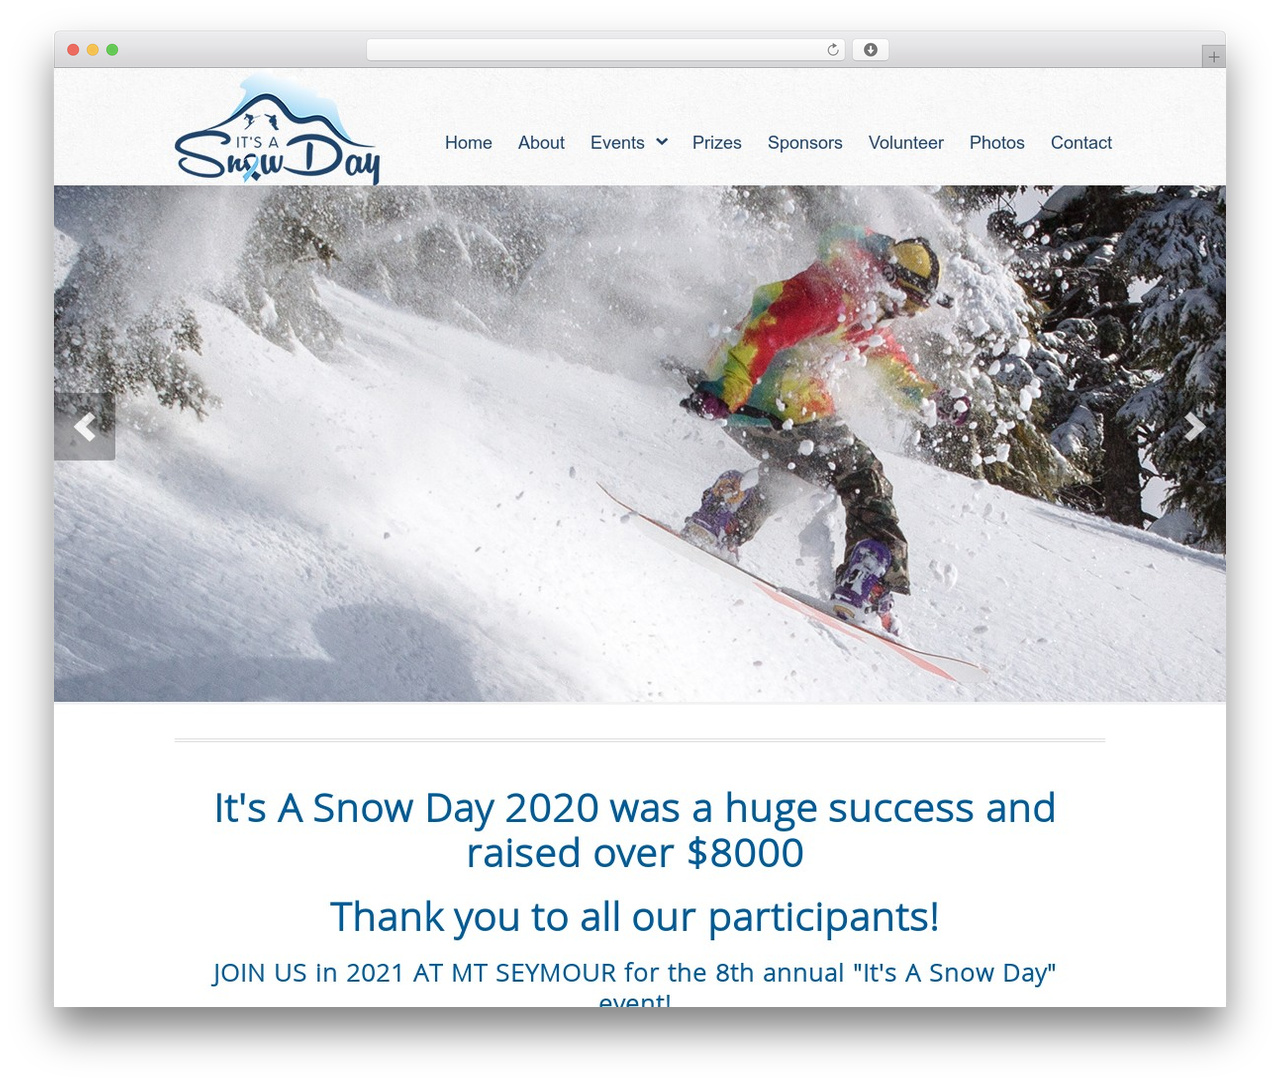 WP theme Peacemaker - itsasnowday.ca